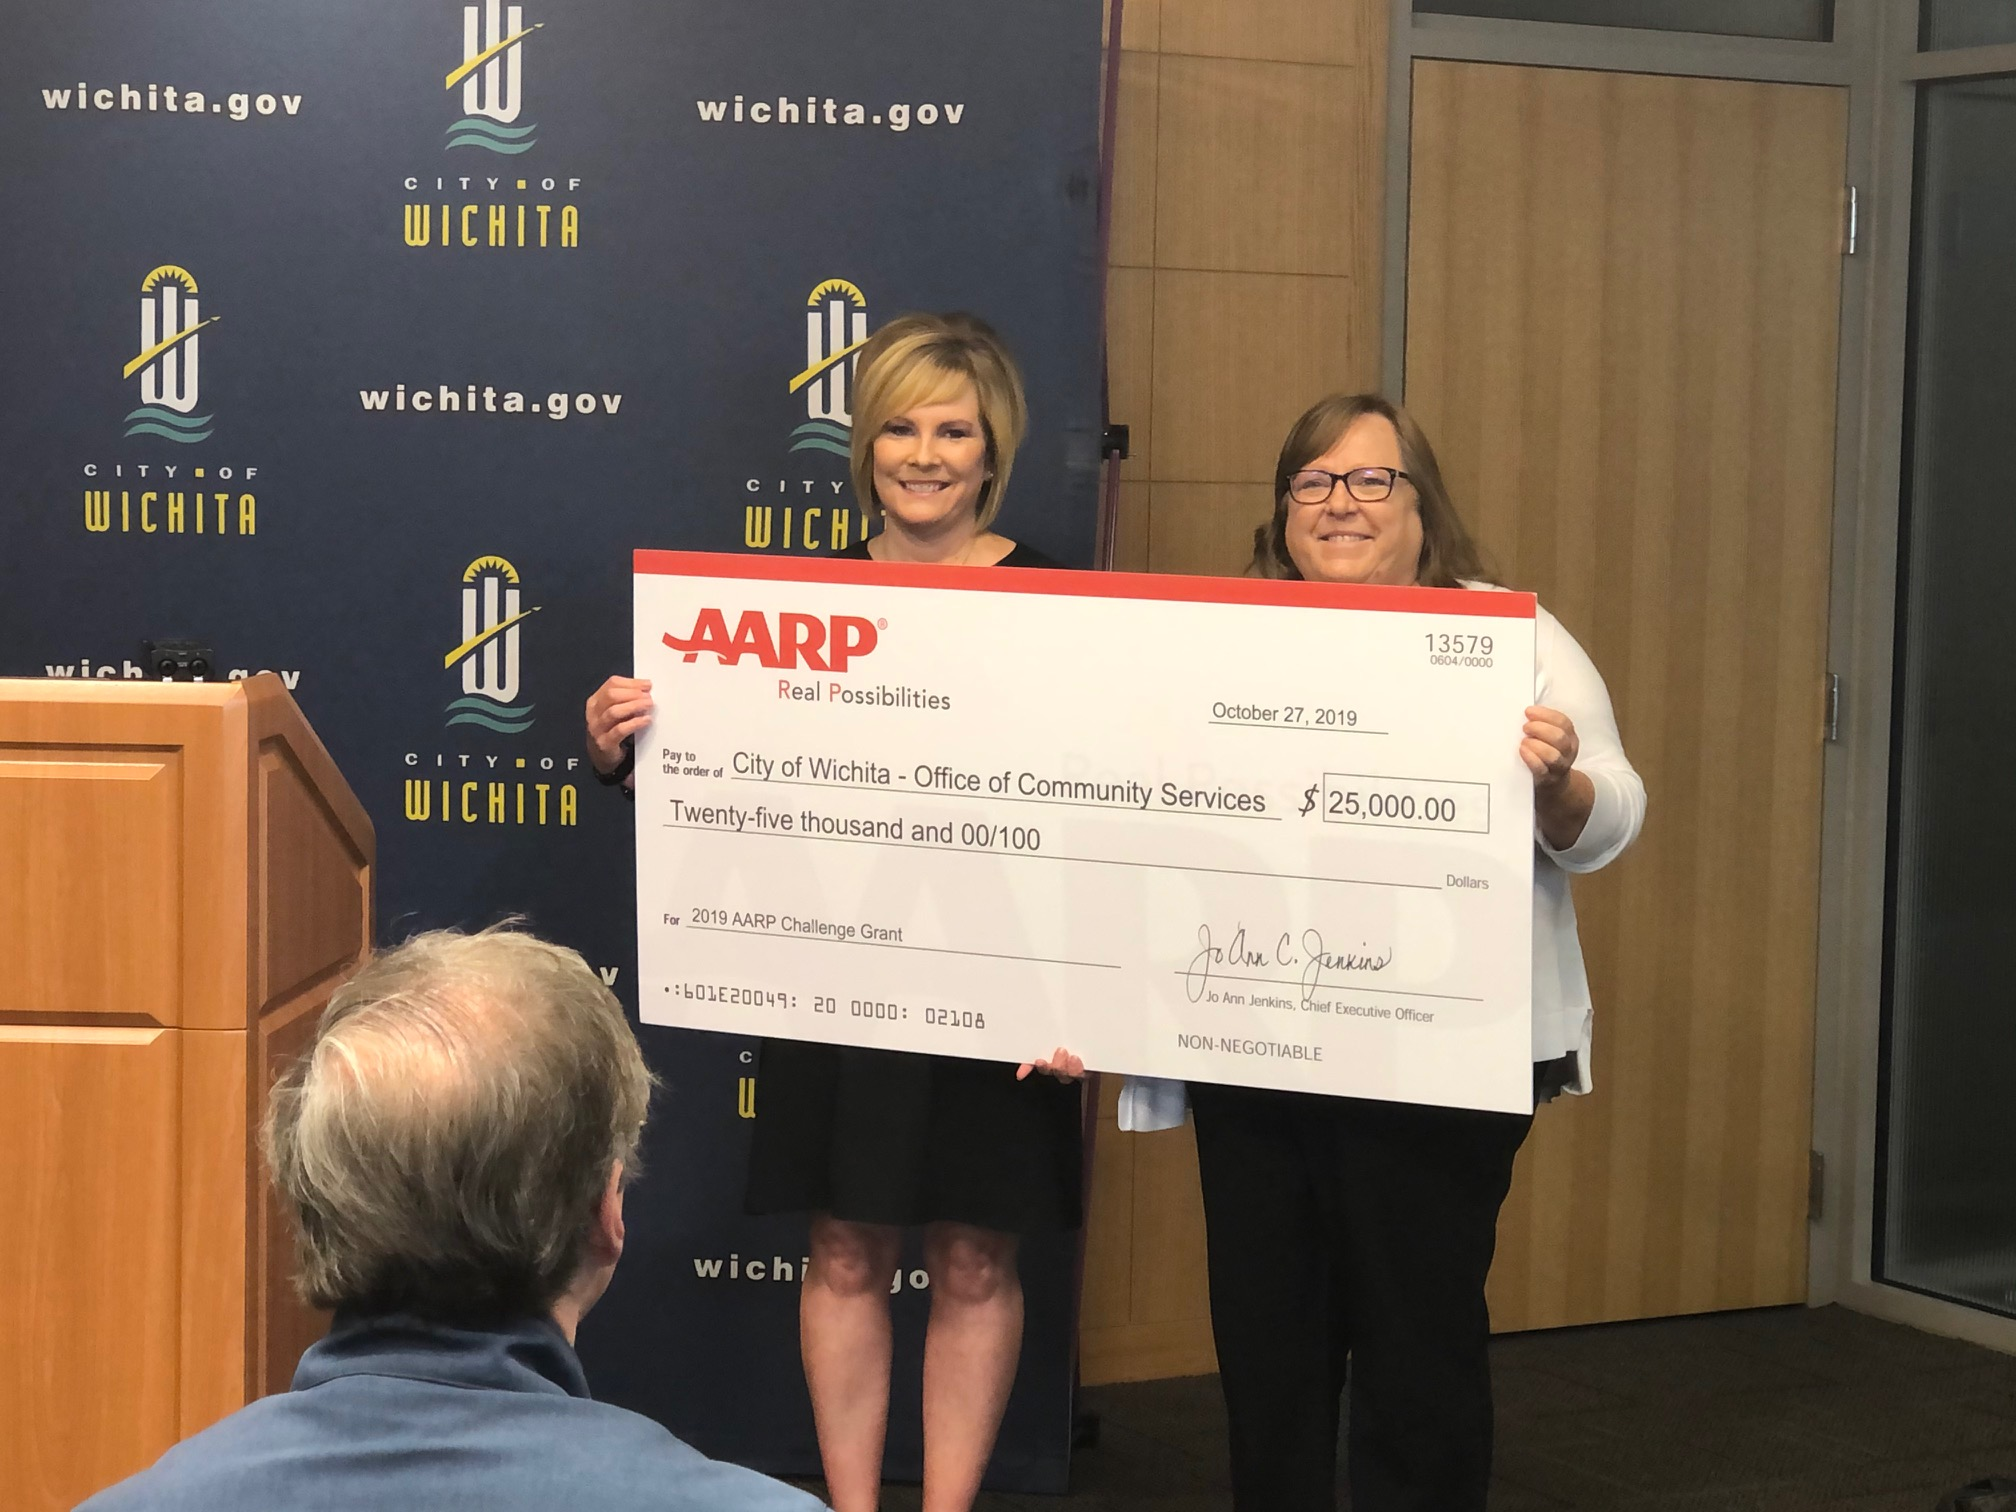 City of Wichita Receives AARP Community Challenge Grant